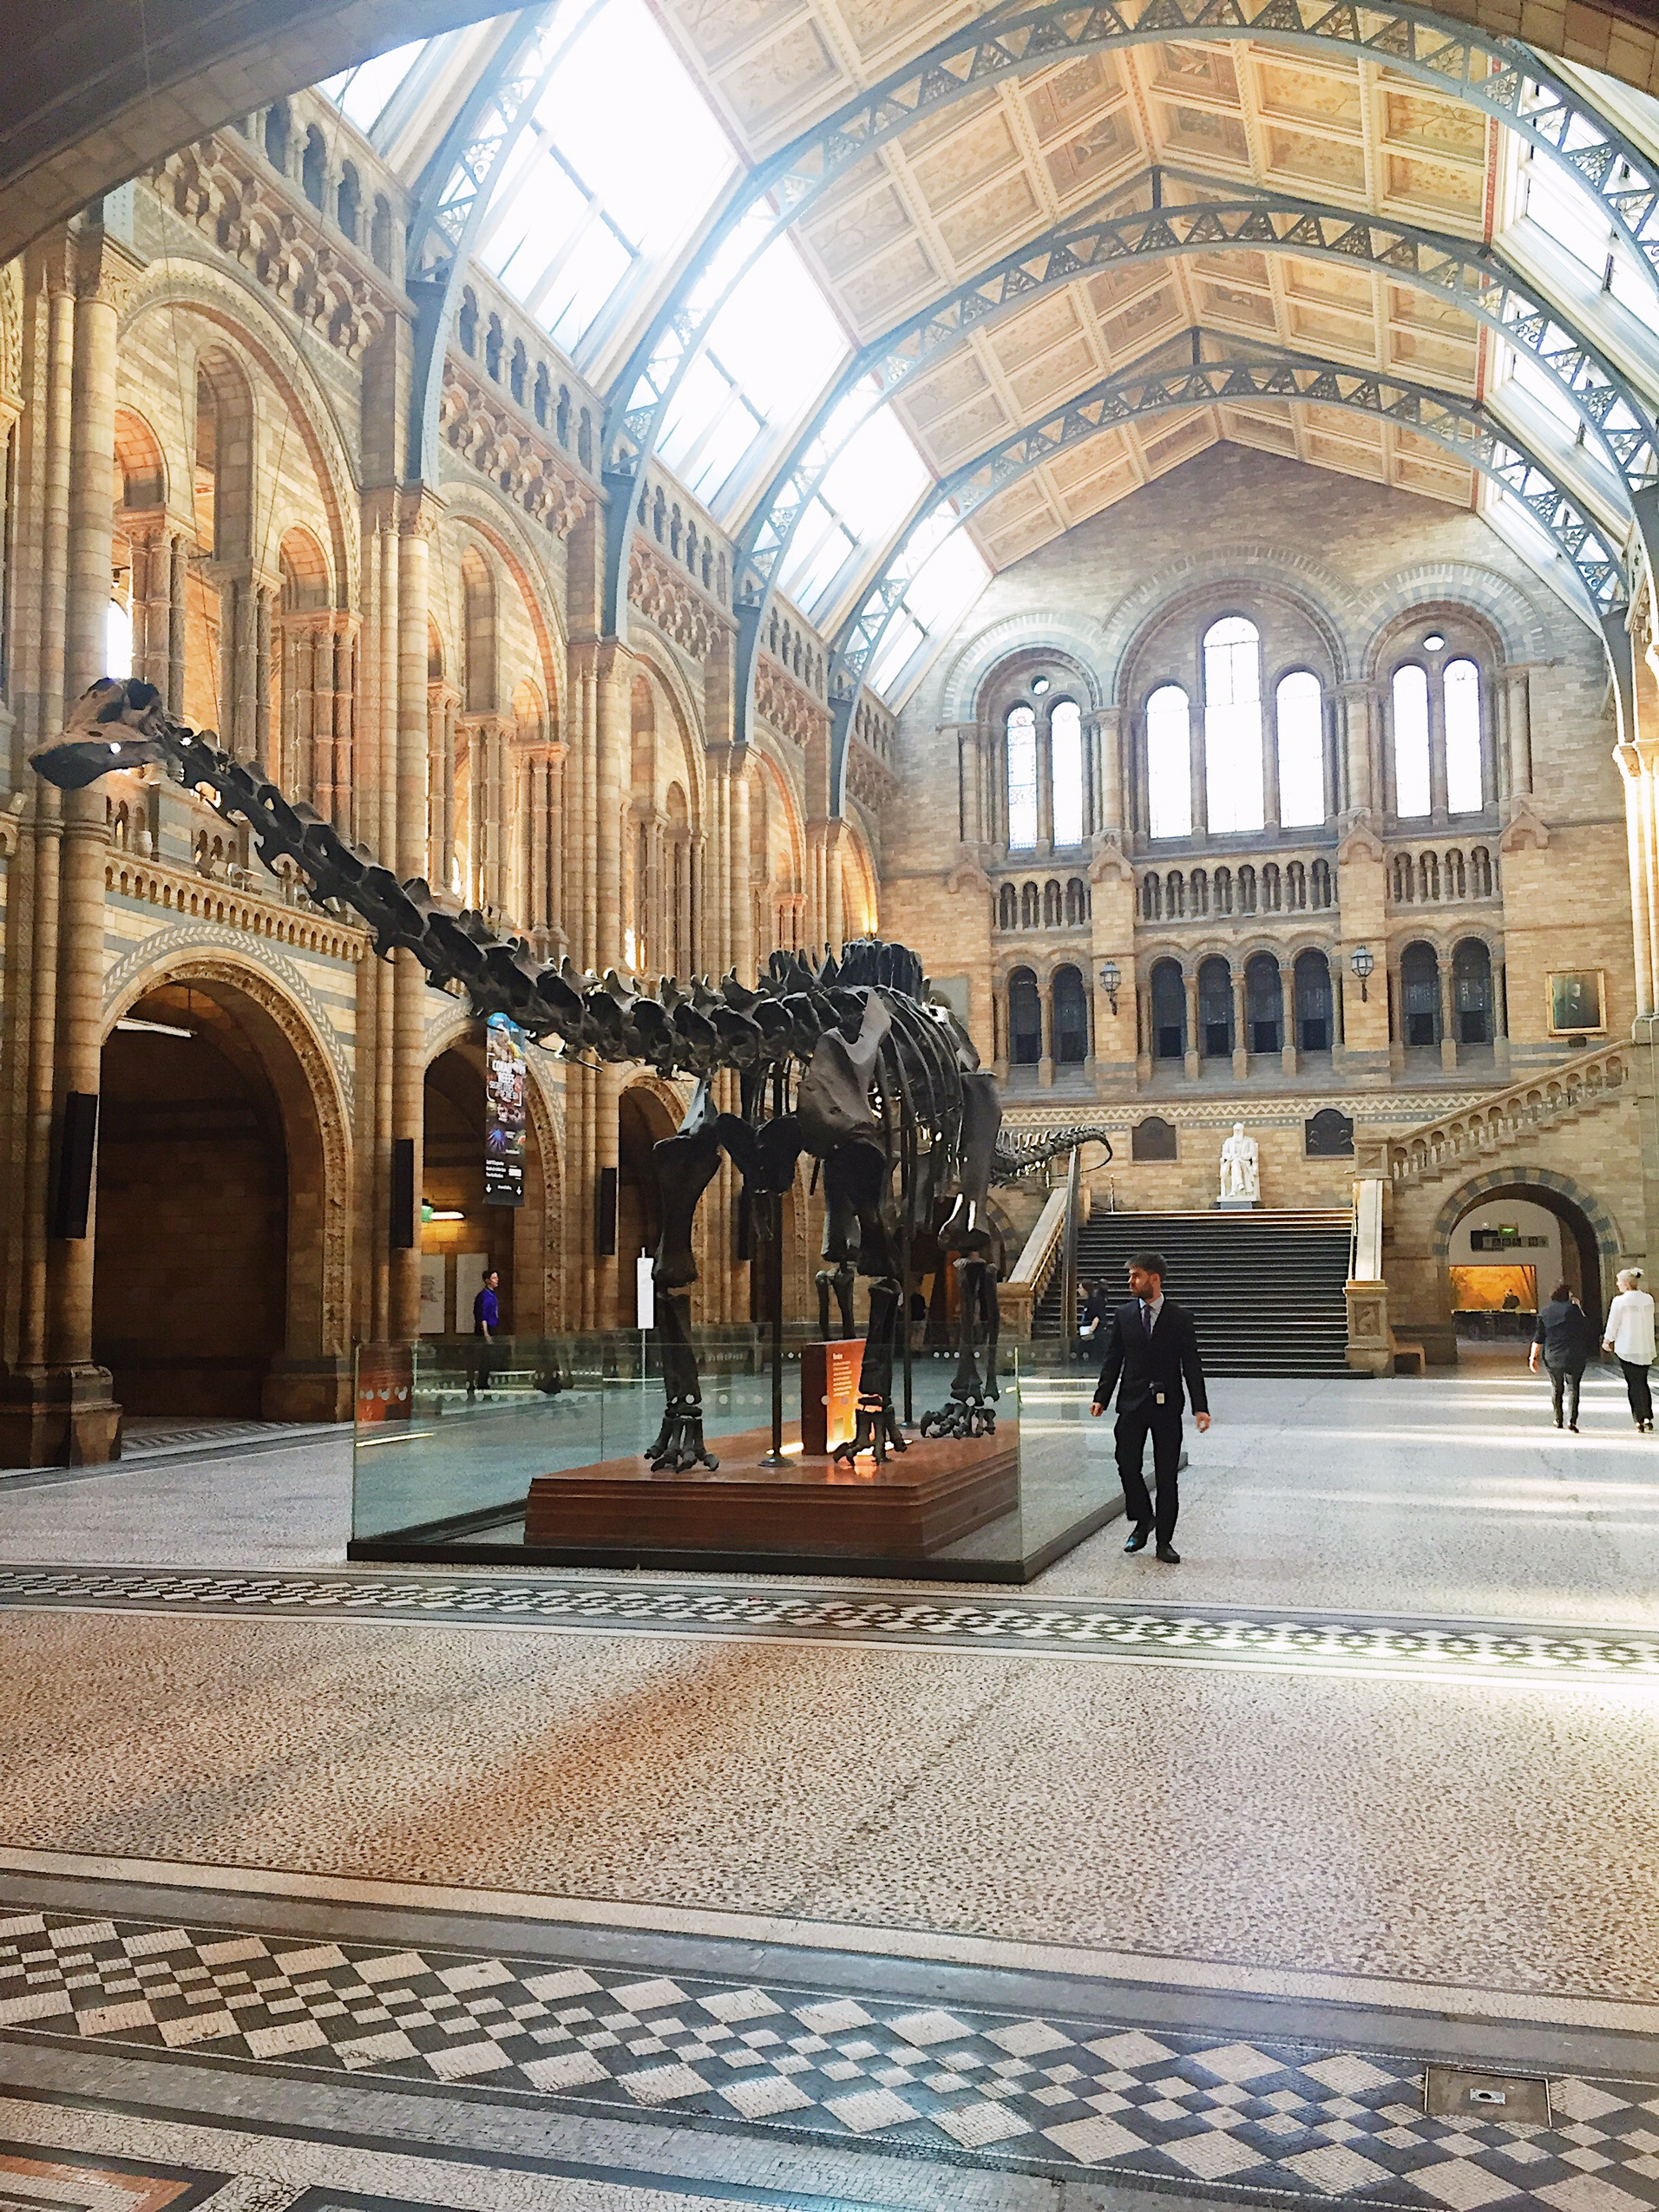 Image of Dippy at Natural History Museum